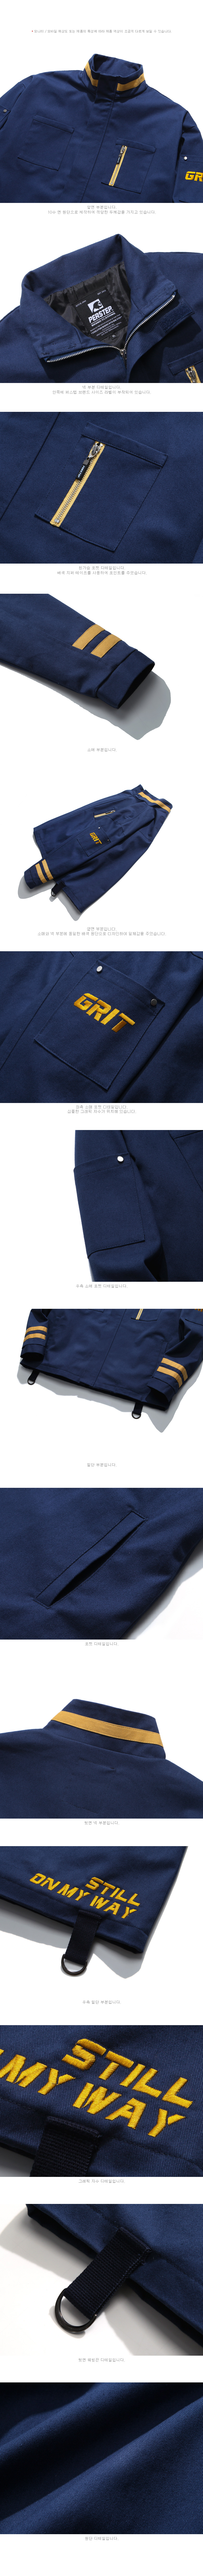 4225_detail_navy_uk_02.jpg